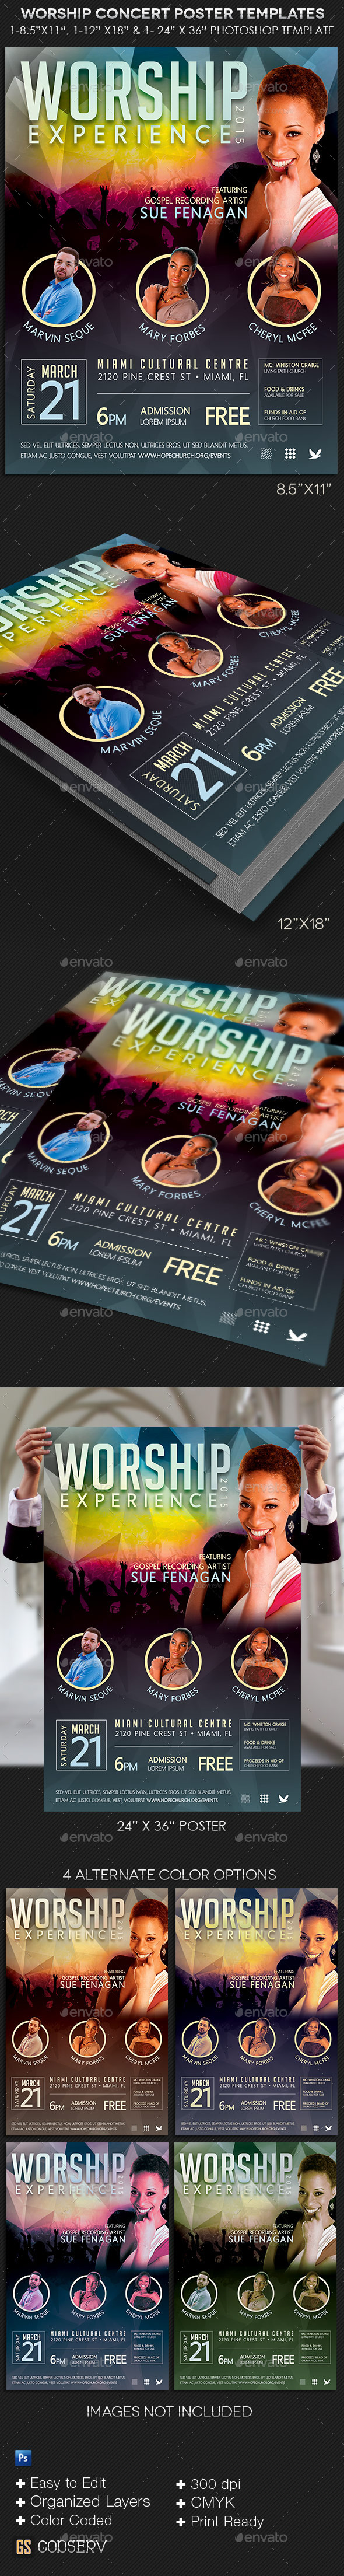 GraphicRiver Worship Concert Poster Templates 10869820